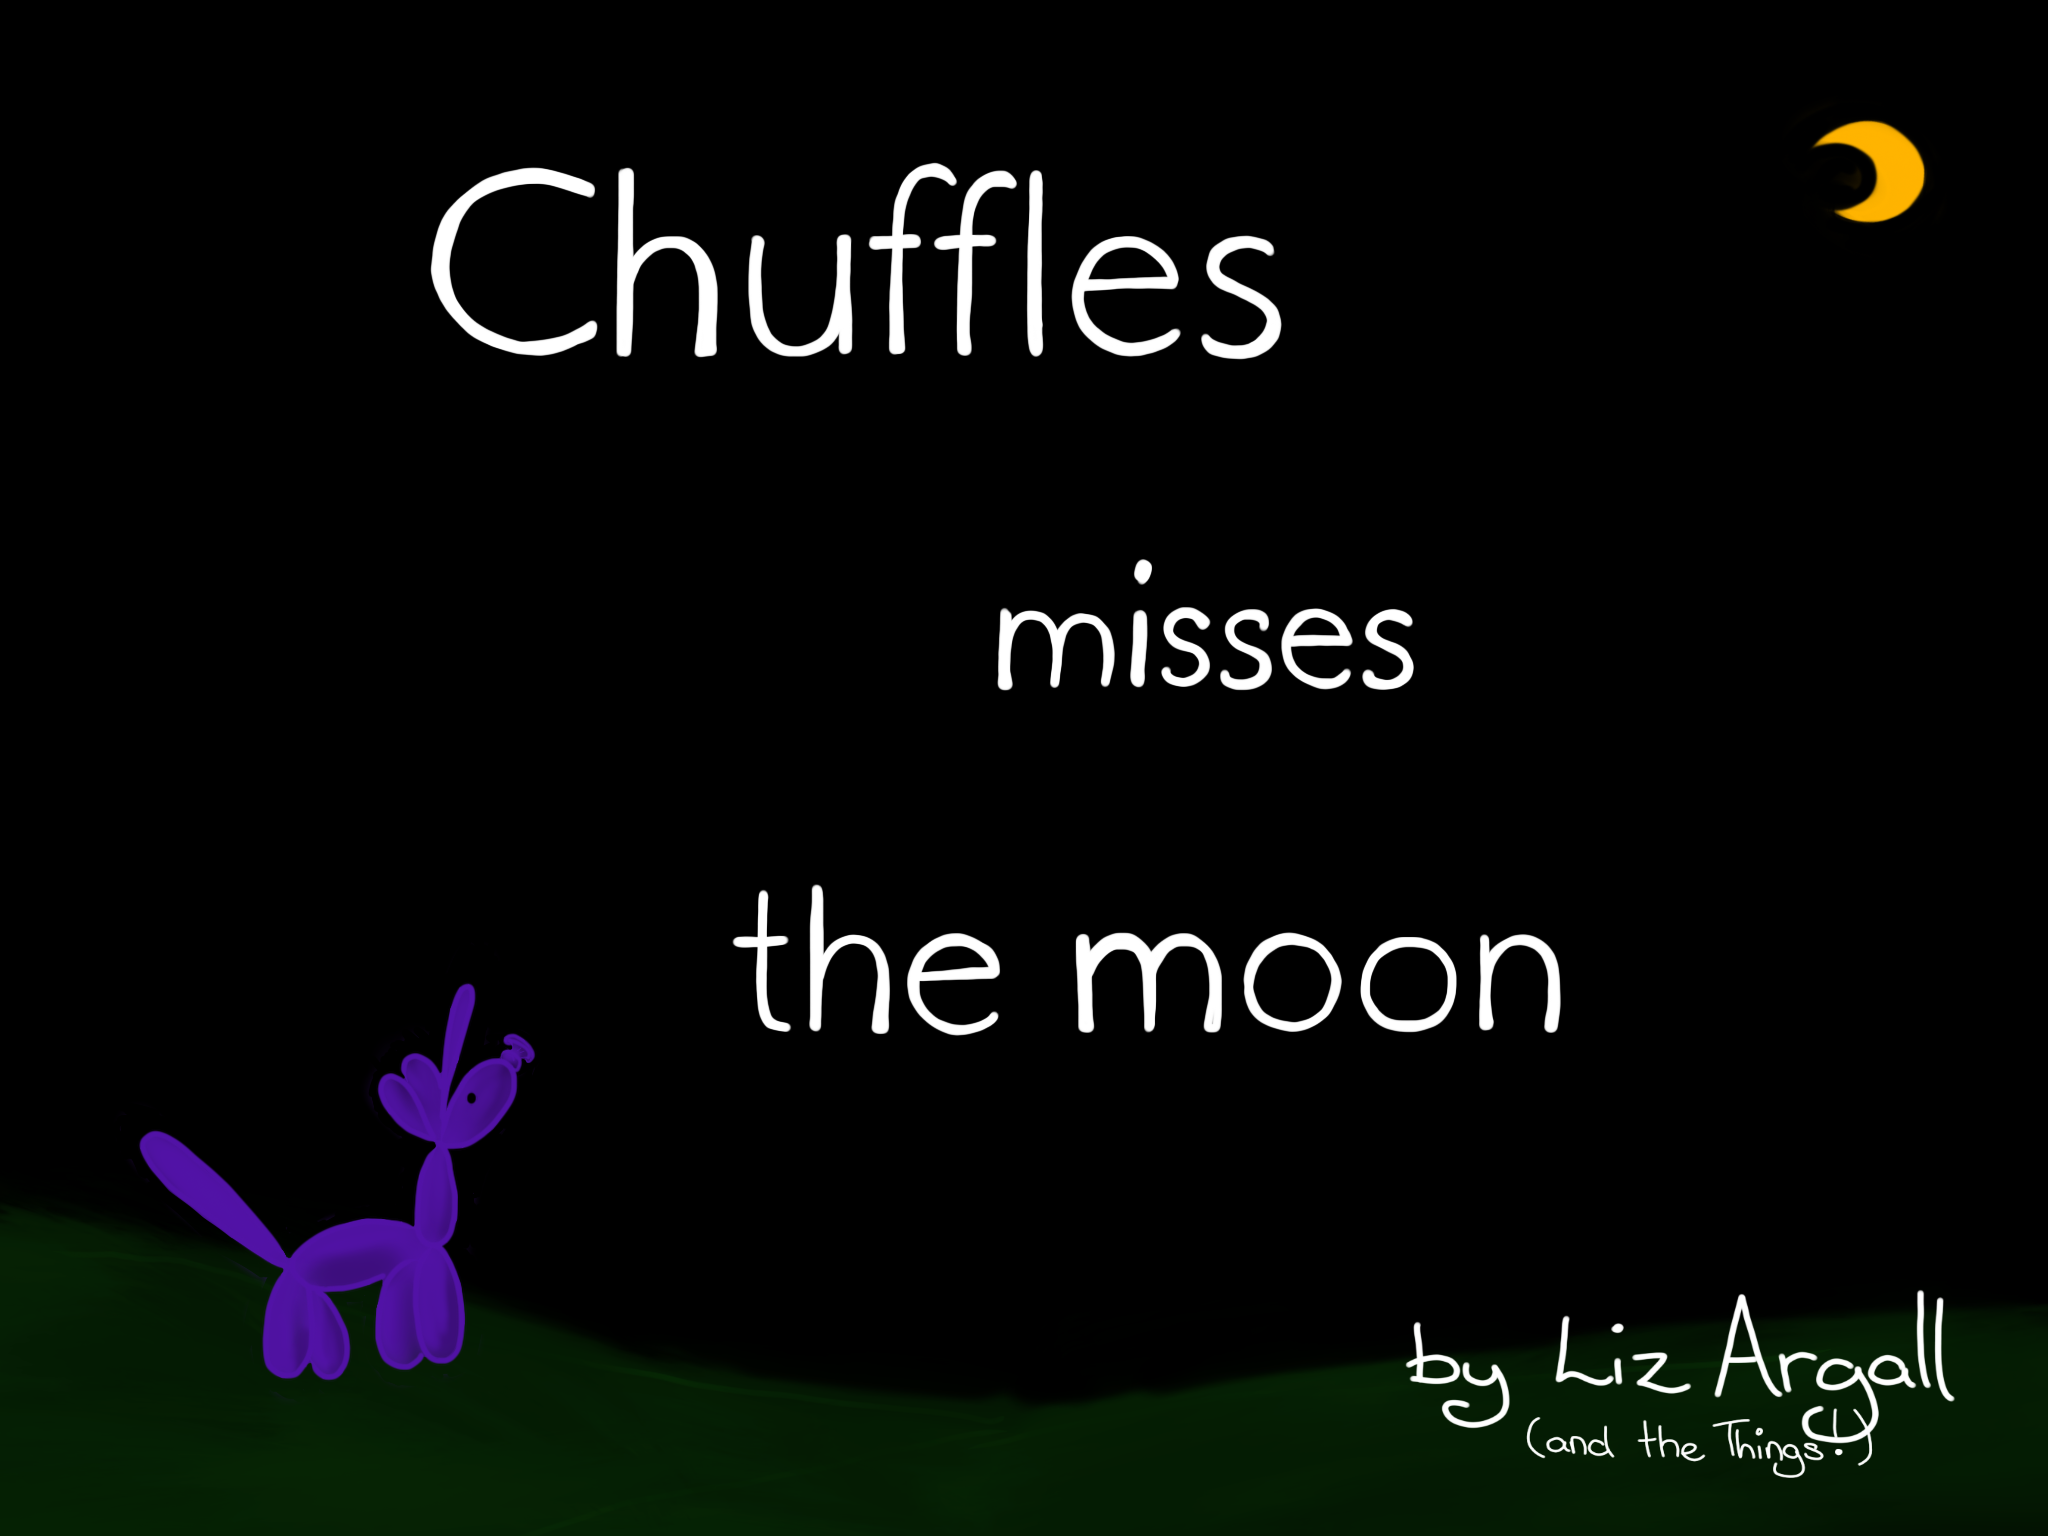 Chuffles Misses the Moon, and so it begins